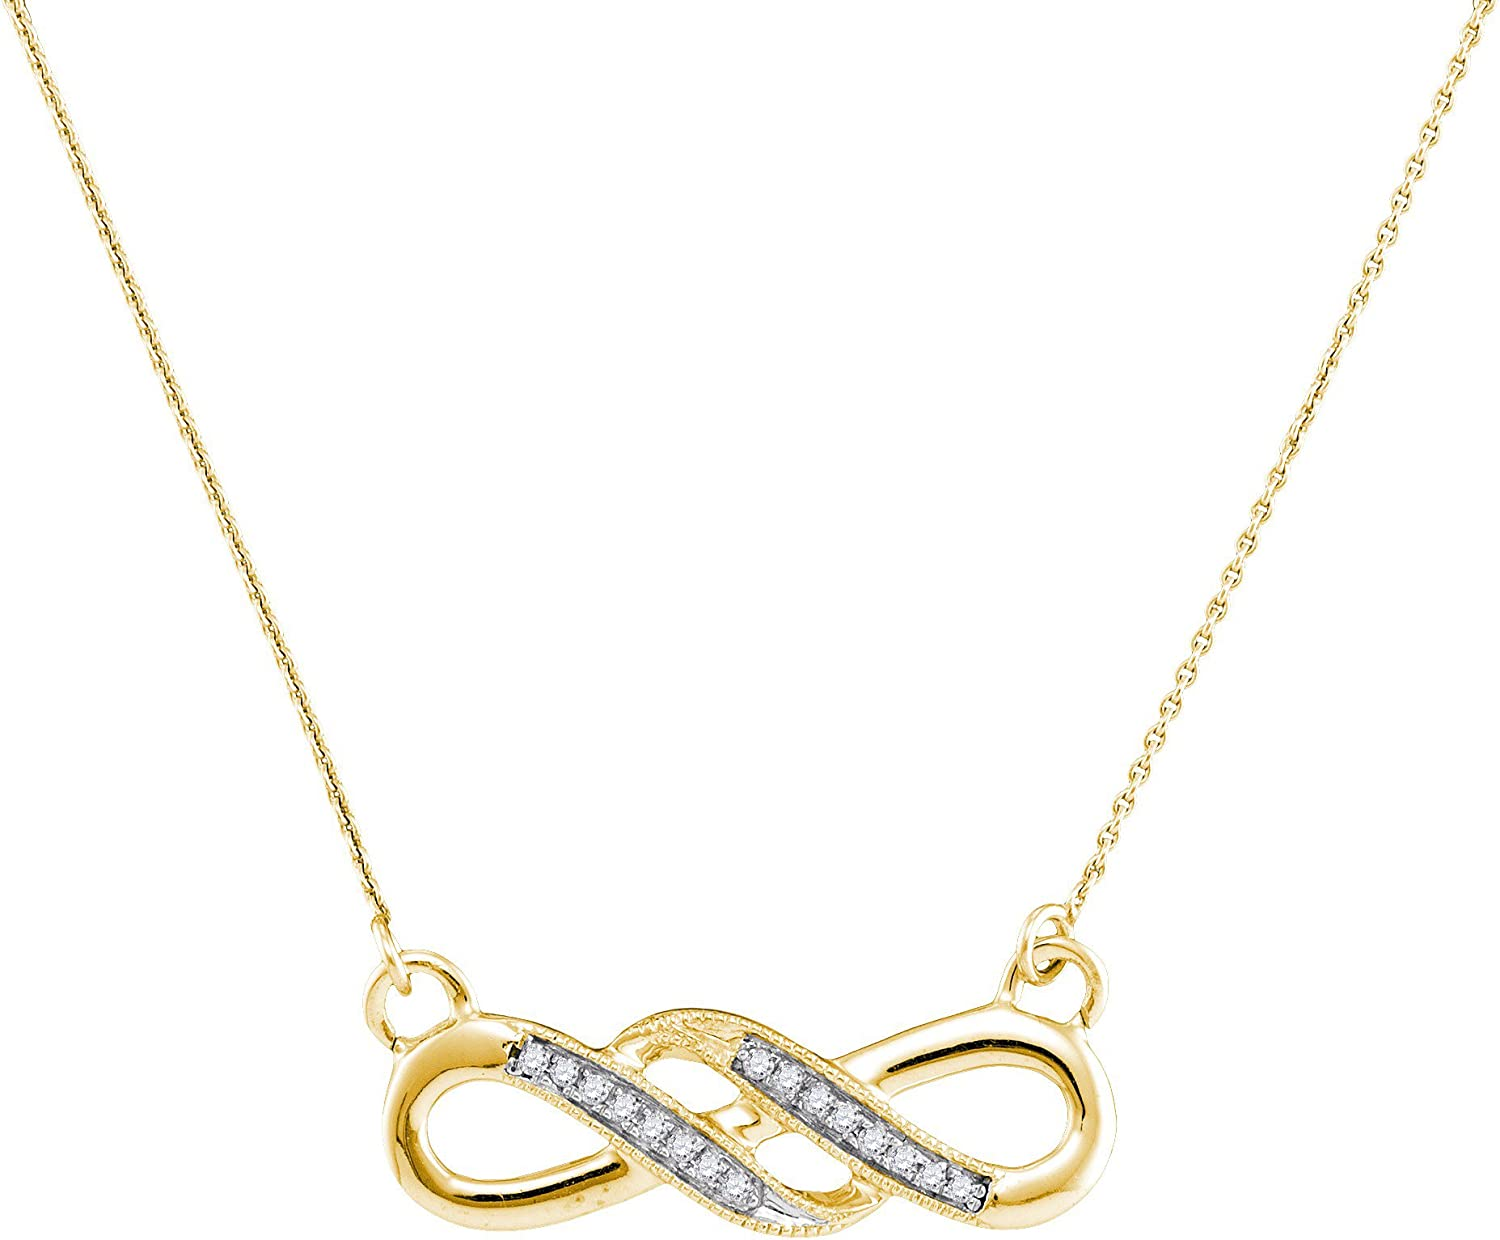 10kt Yellow gold Womens Round Diamond Infinity Pendant Necklace 1 20 Cttw